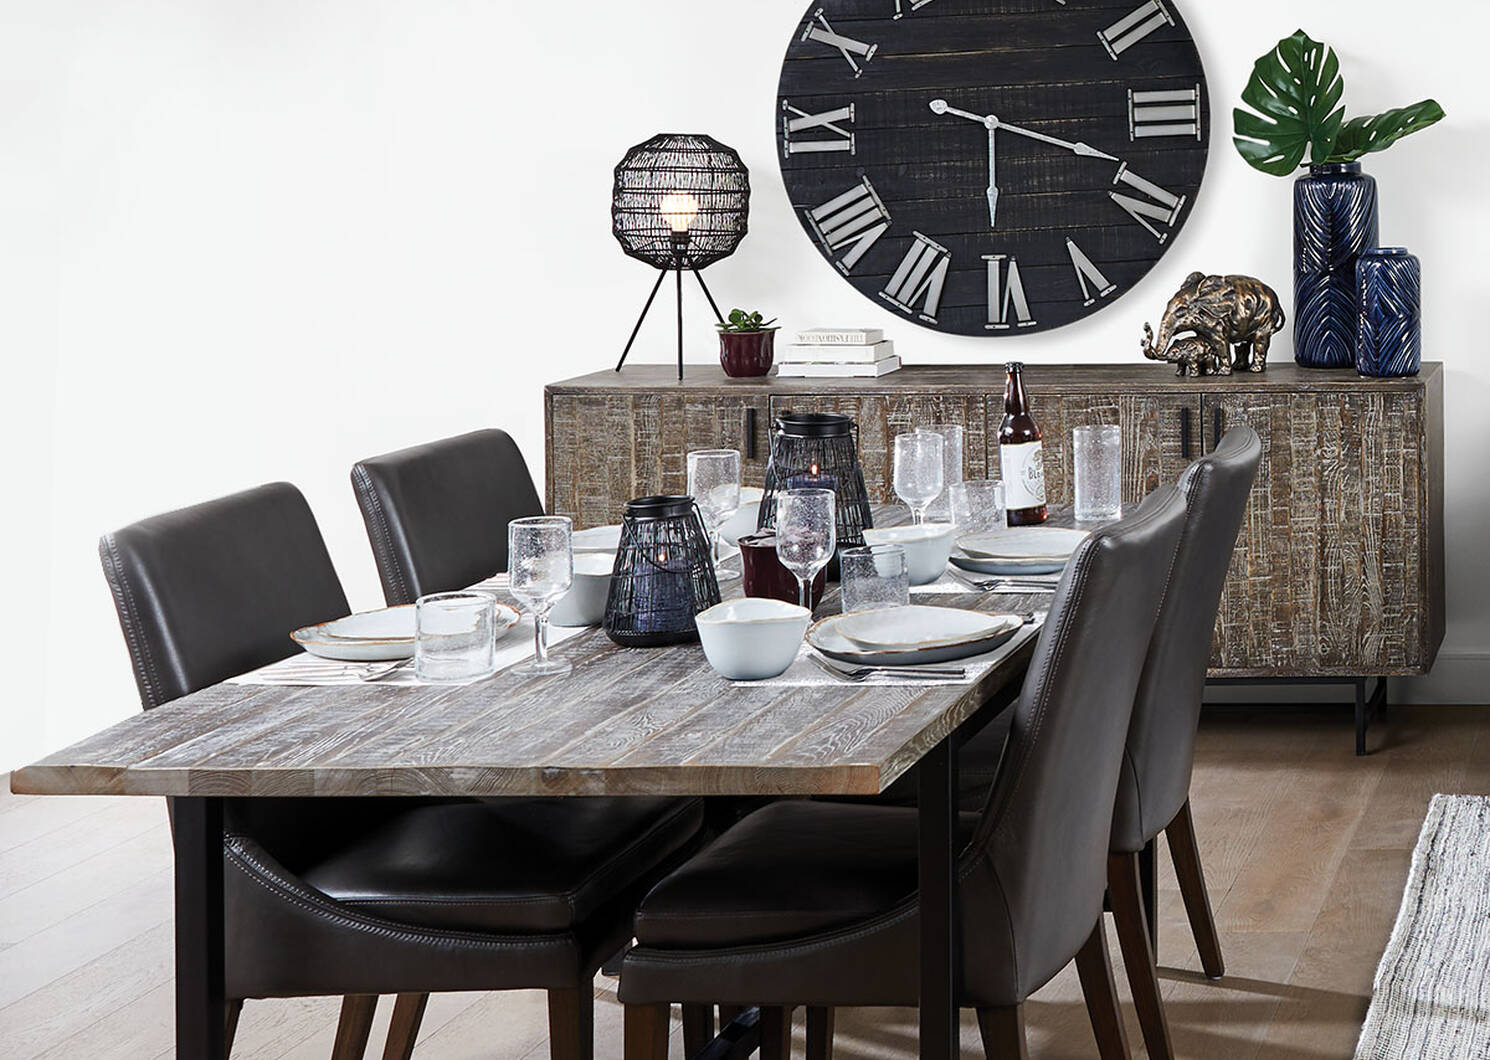 Montana Dining Chair -Lakeshore Grey